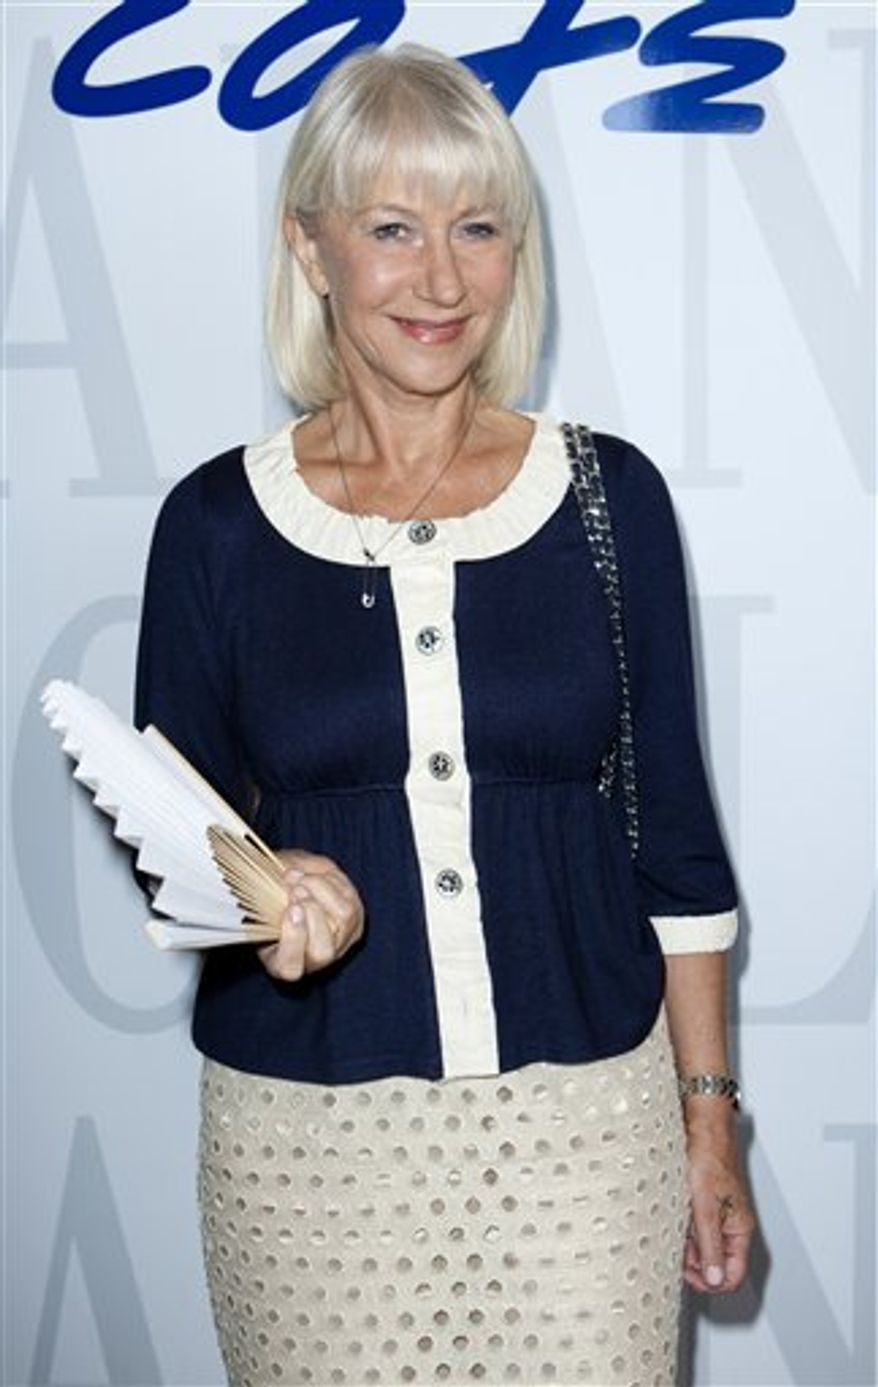 Actress Helen Mirren at the 67th edition of the Venice Film Festival in Venice, Italy, Saturday, Sept. 11, 2010. (AP Photo/Joel Ryan)